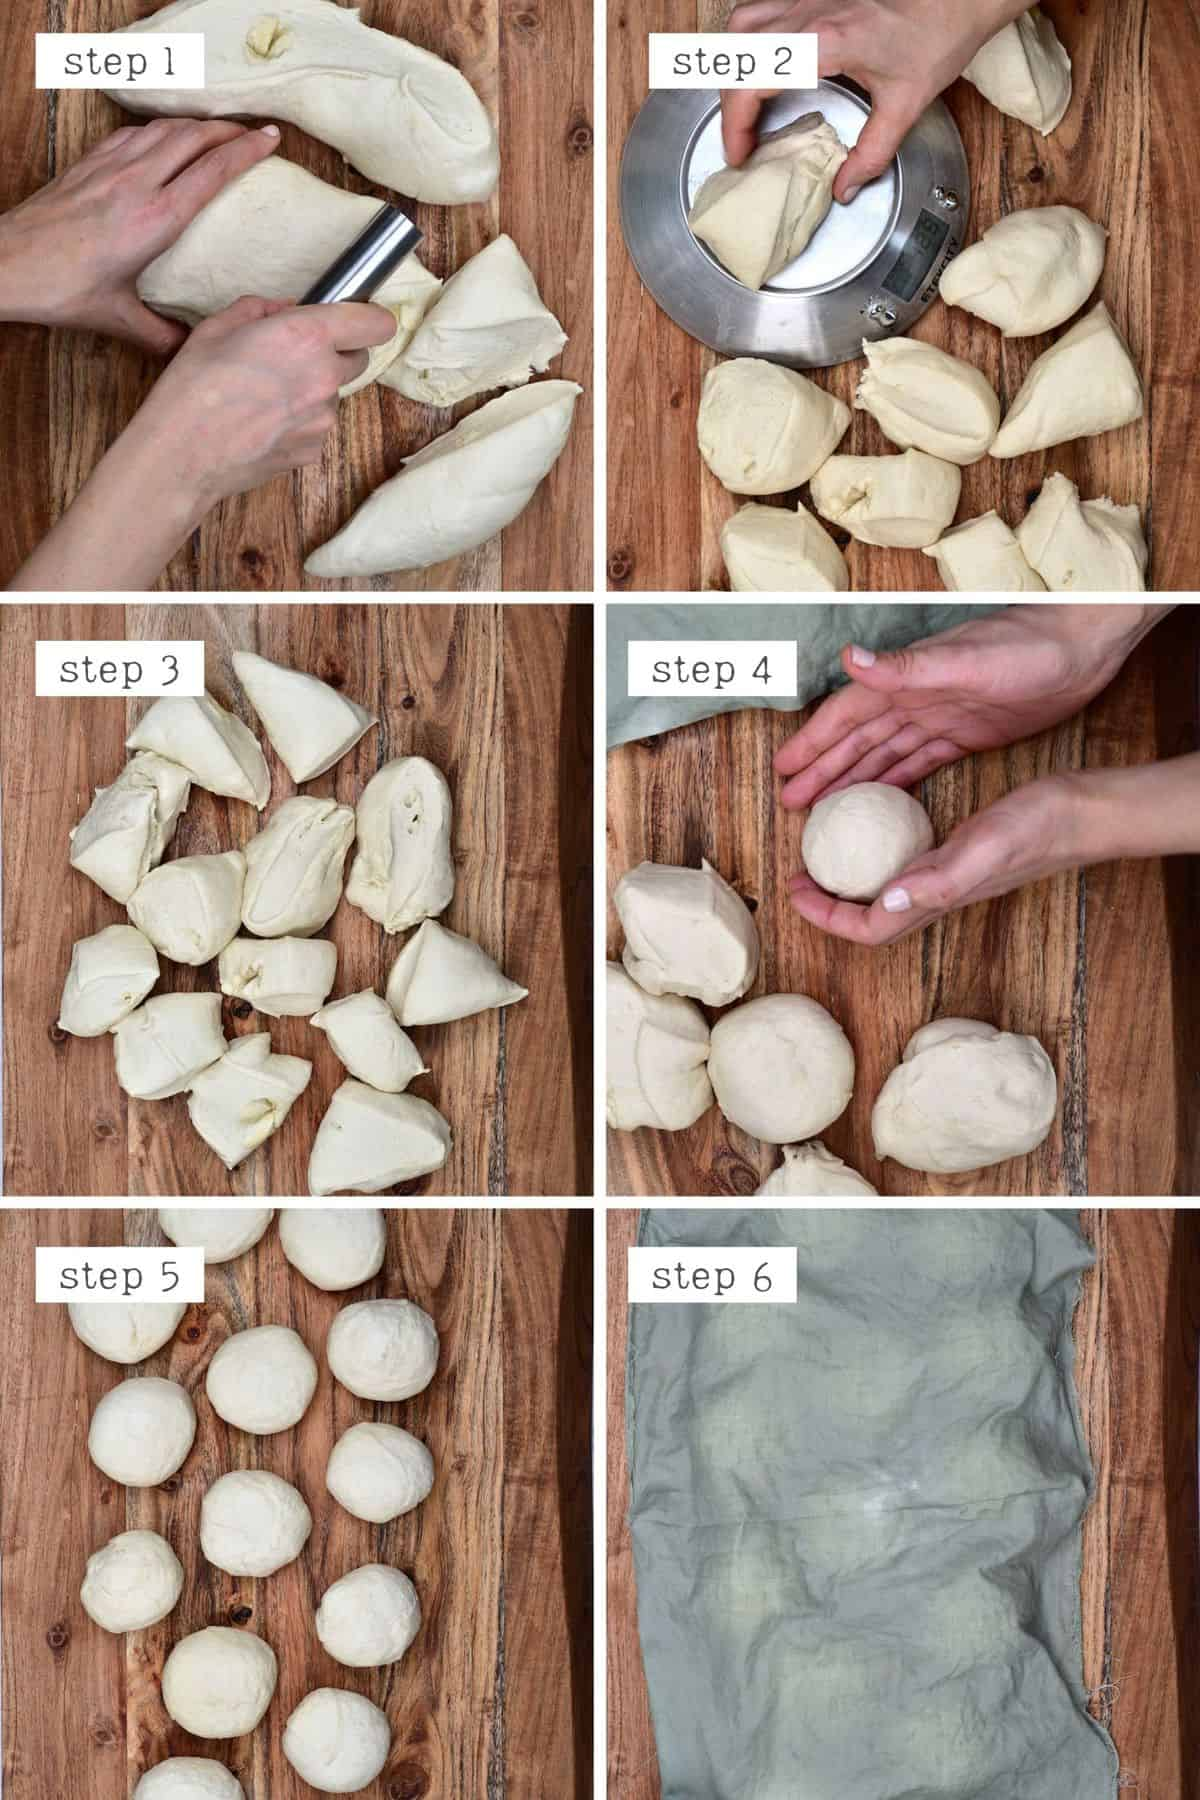 Steps for shaping dough into bagels